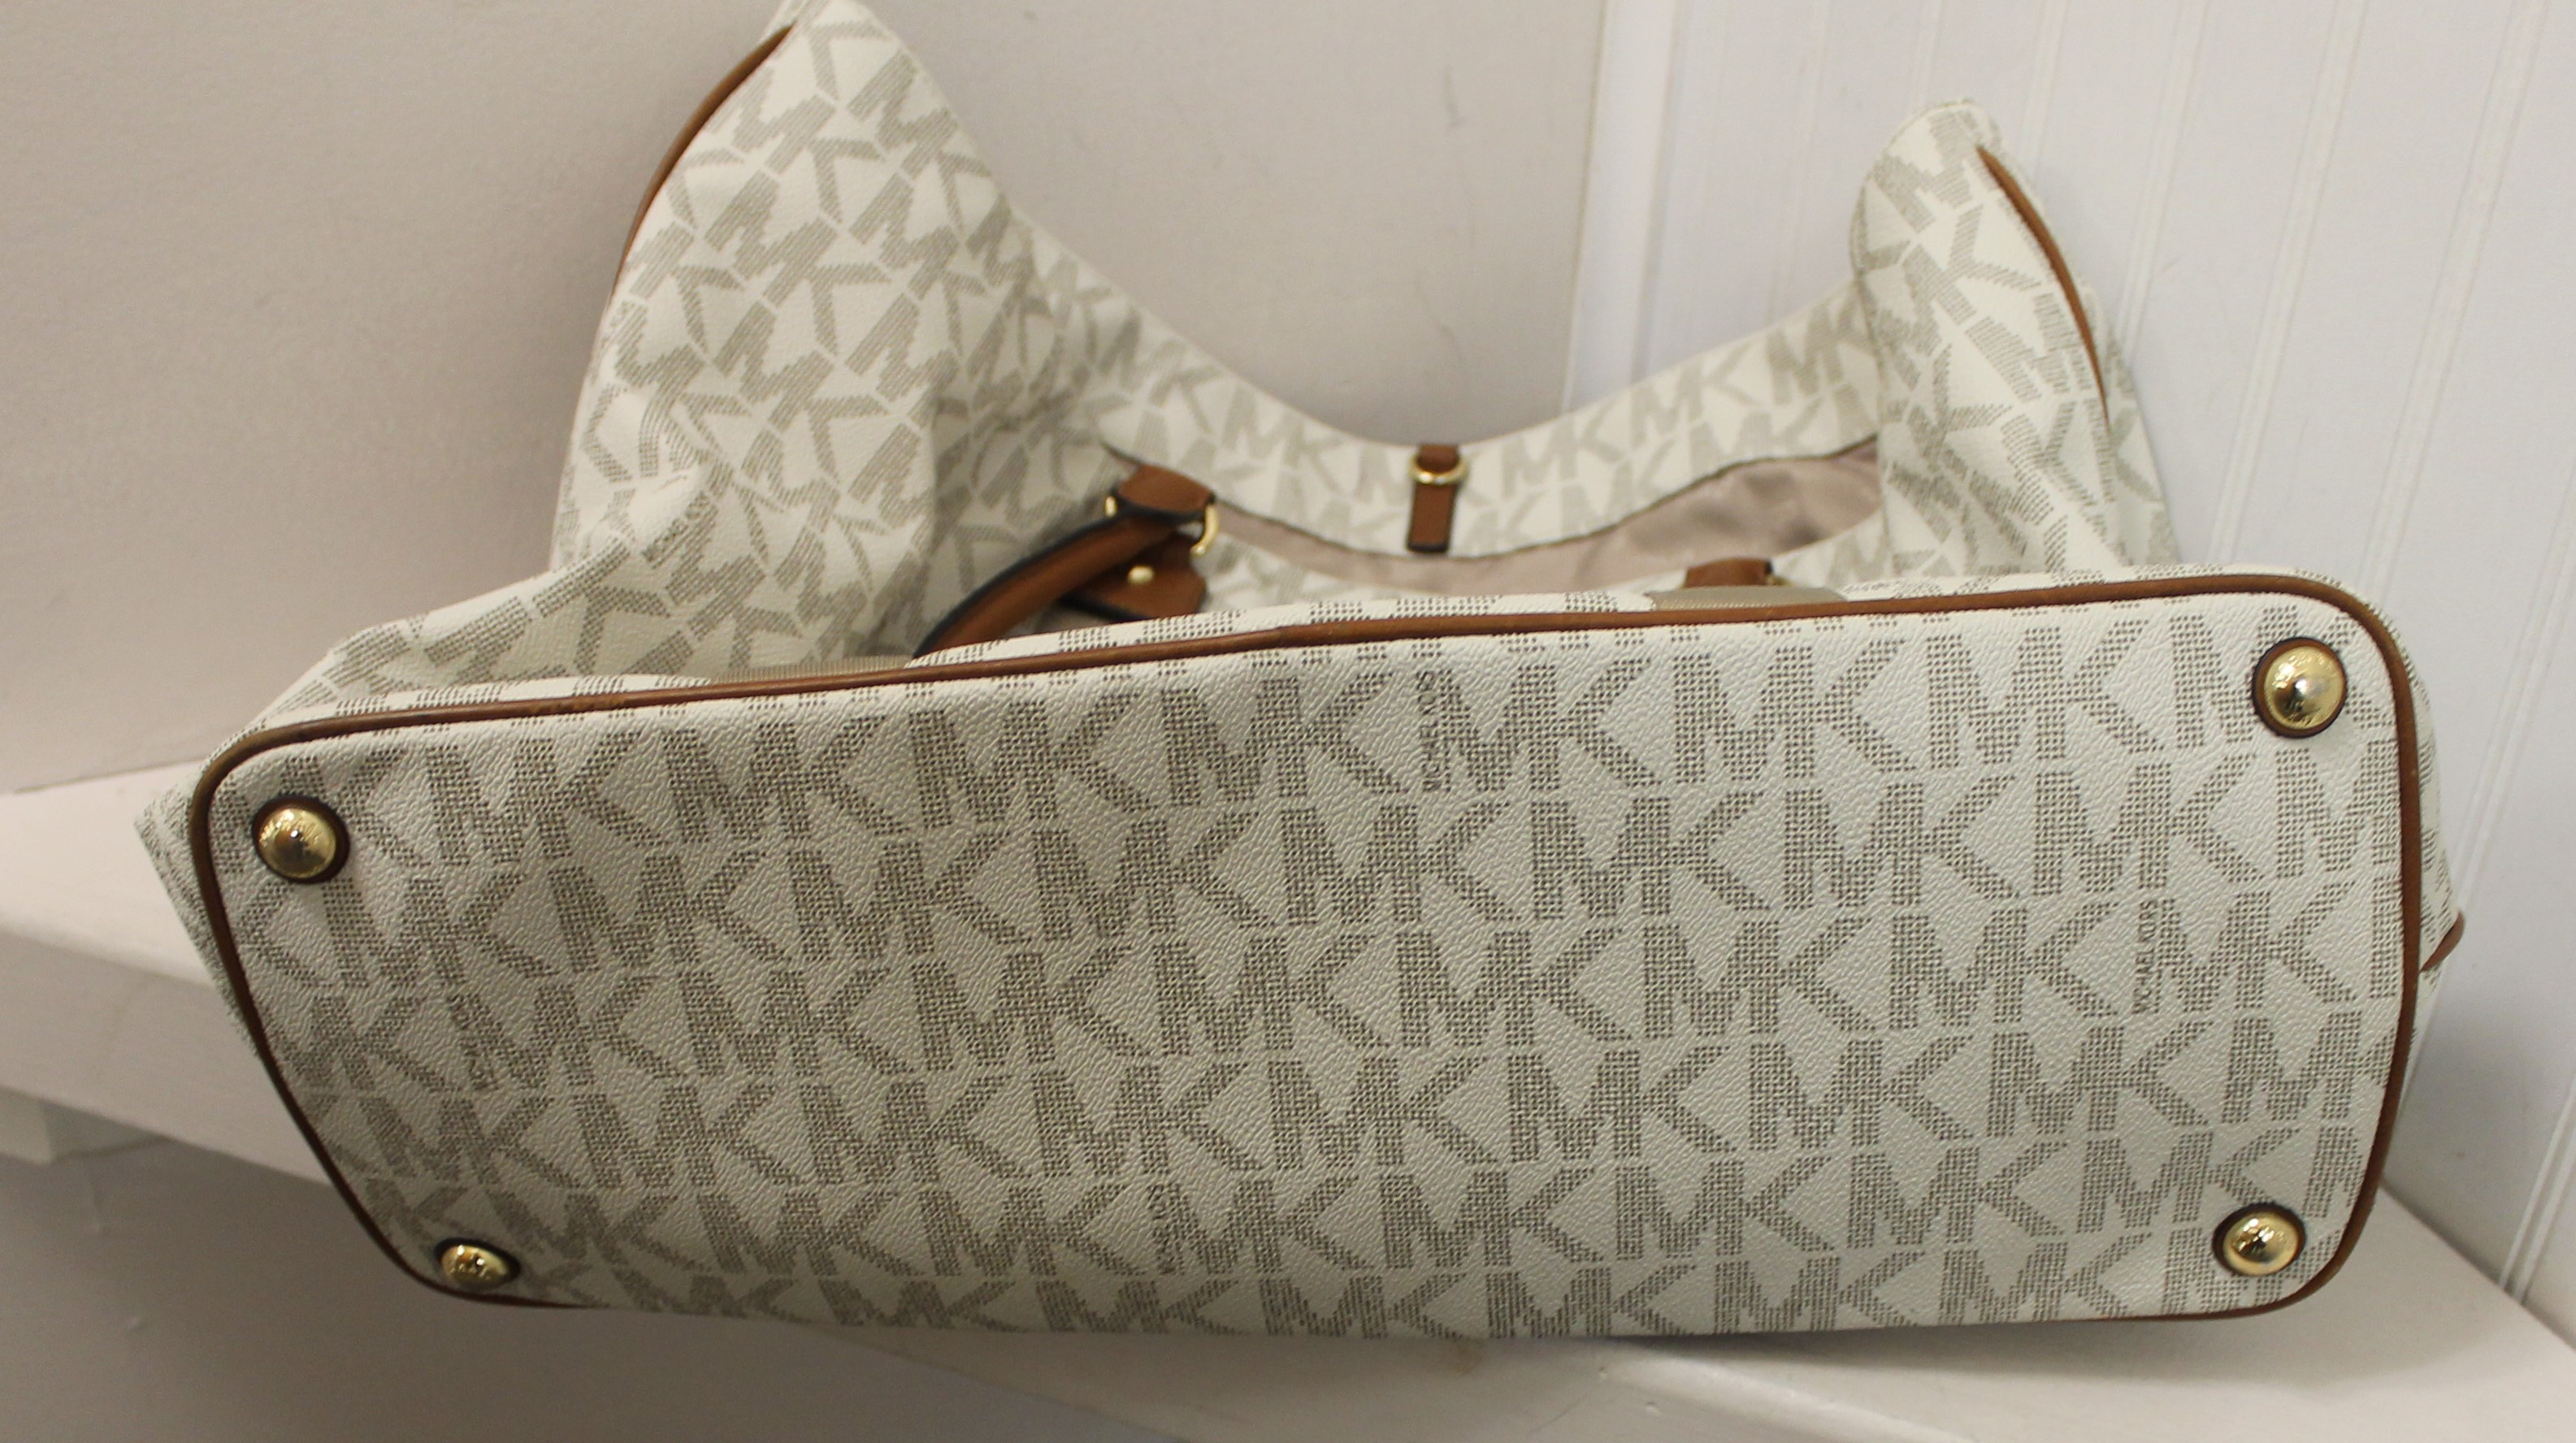 MICHAEL-KORS-WHITE-BROWN-GRAY-LEATHER-AND-CANVAS-LOGO-TOTE_69120D.jpg